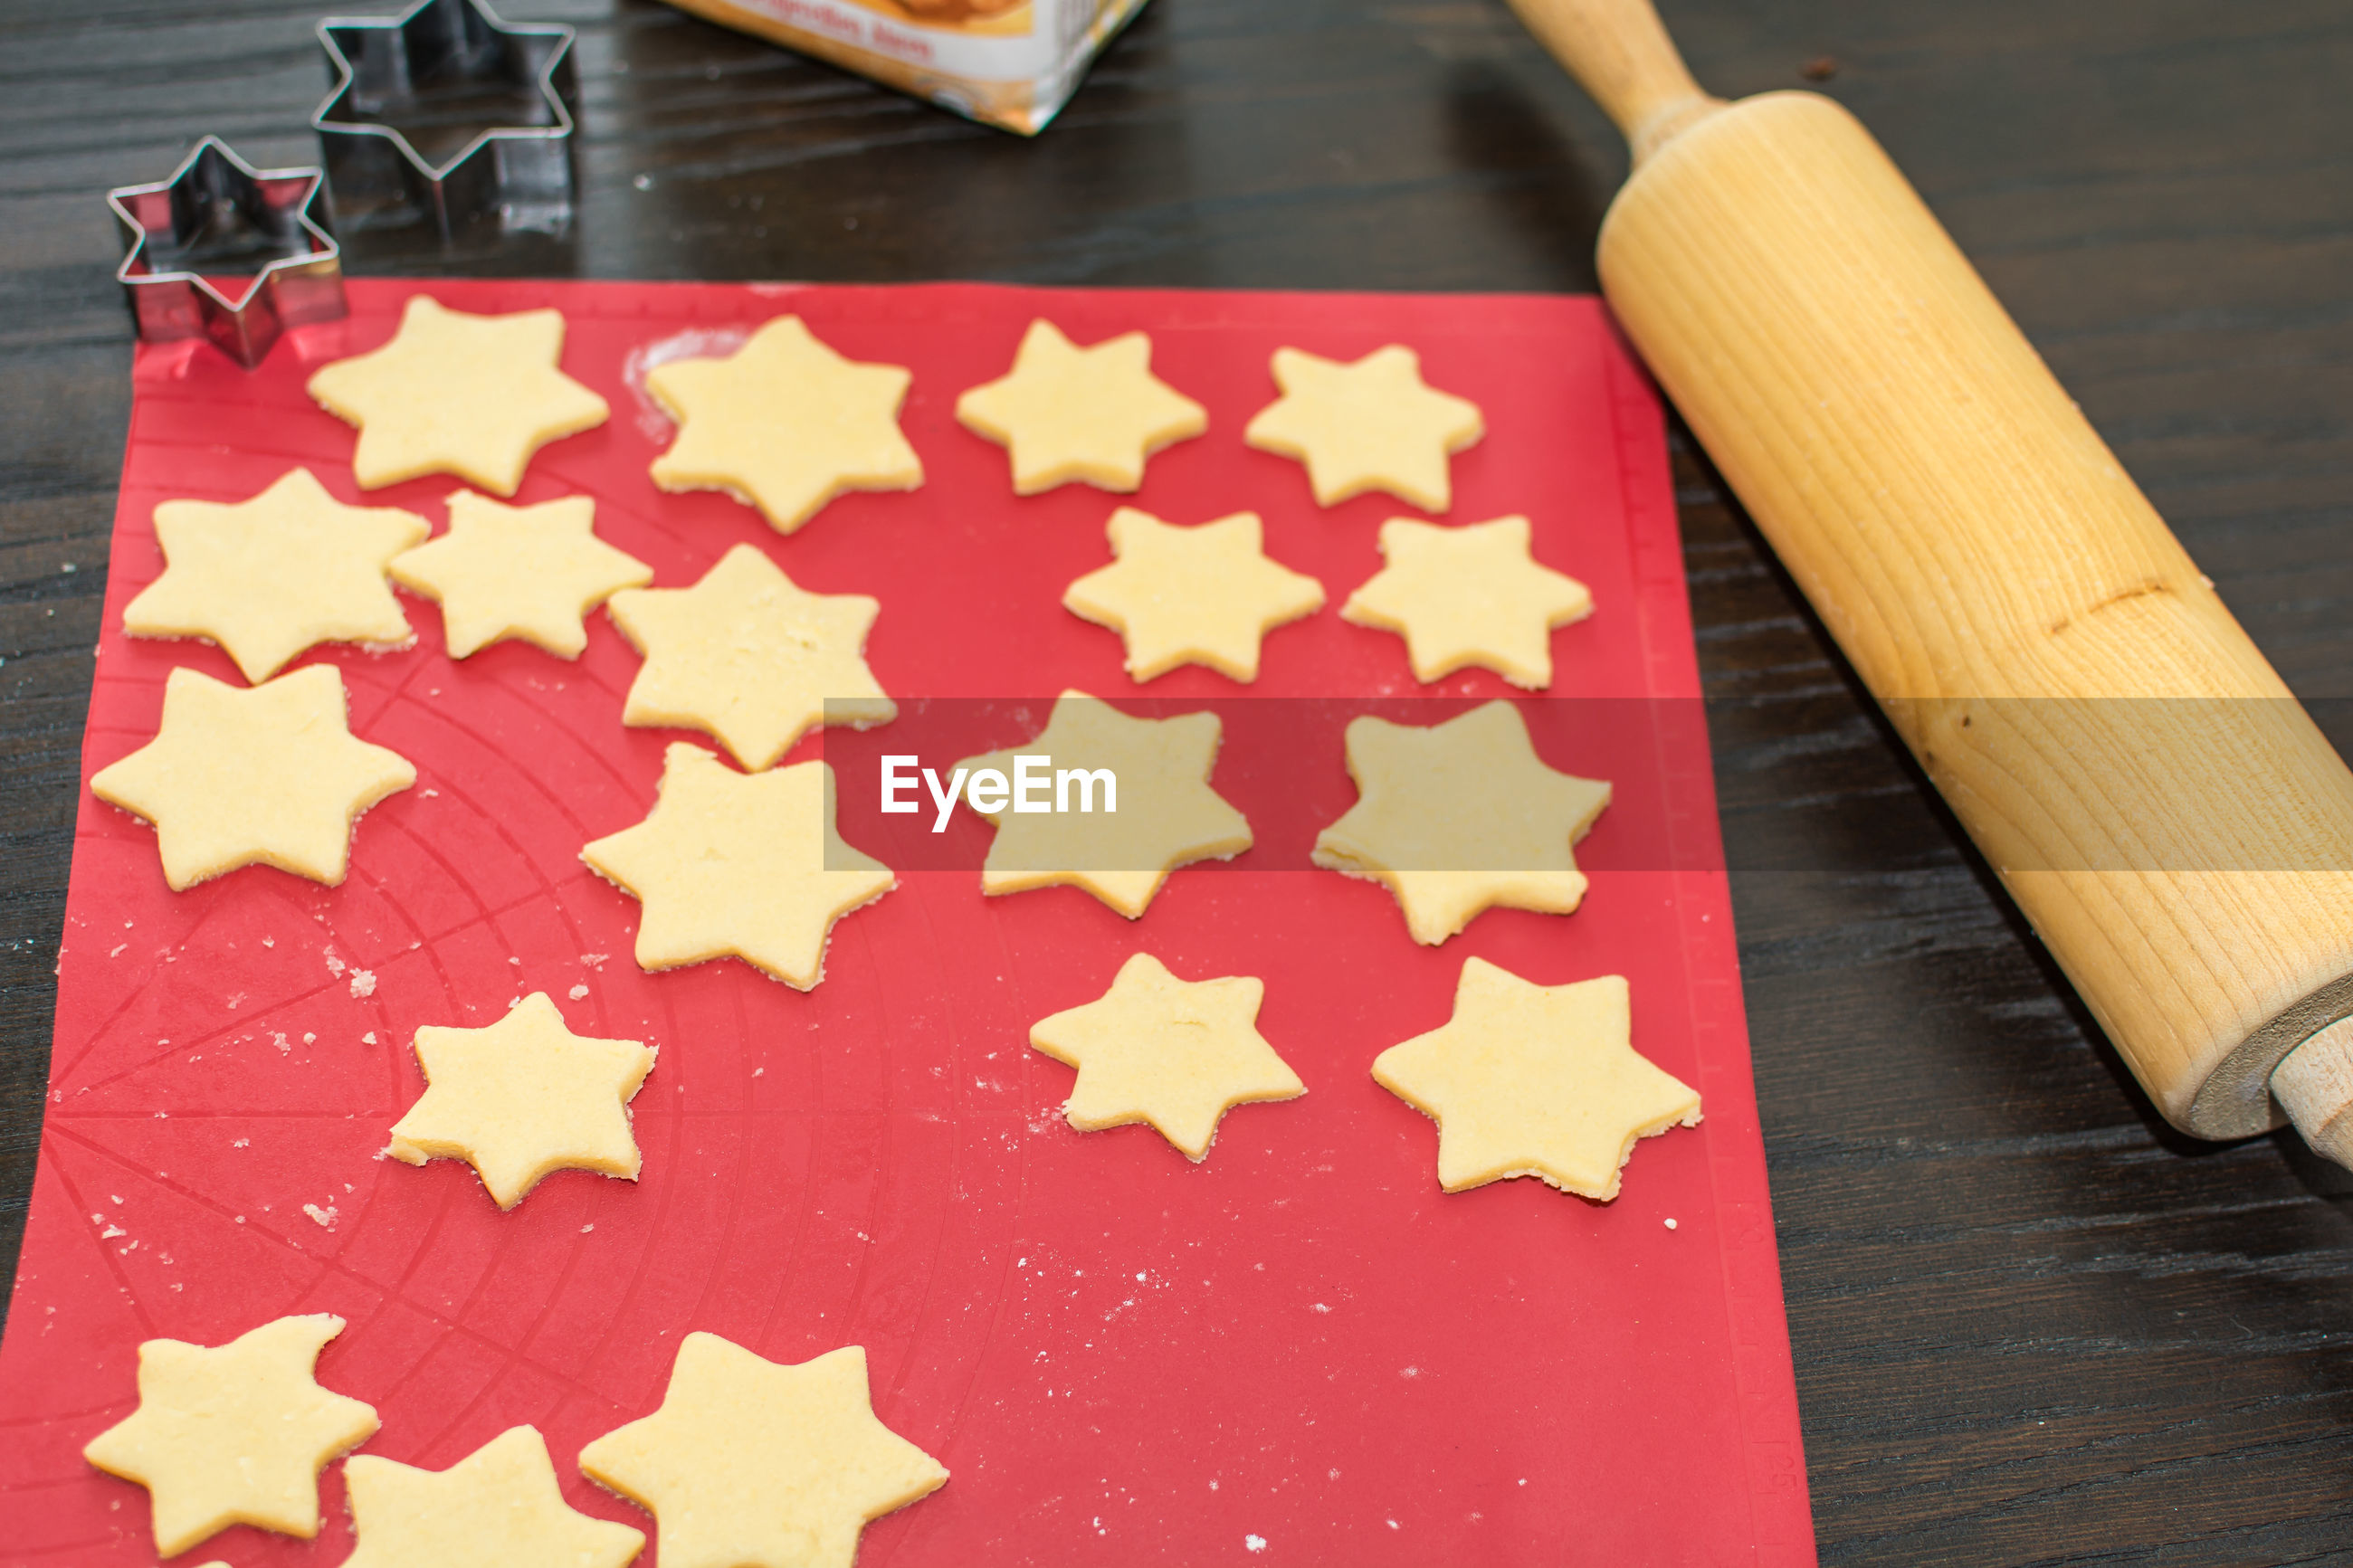 Baking christmas cookies in star form for advent season